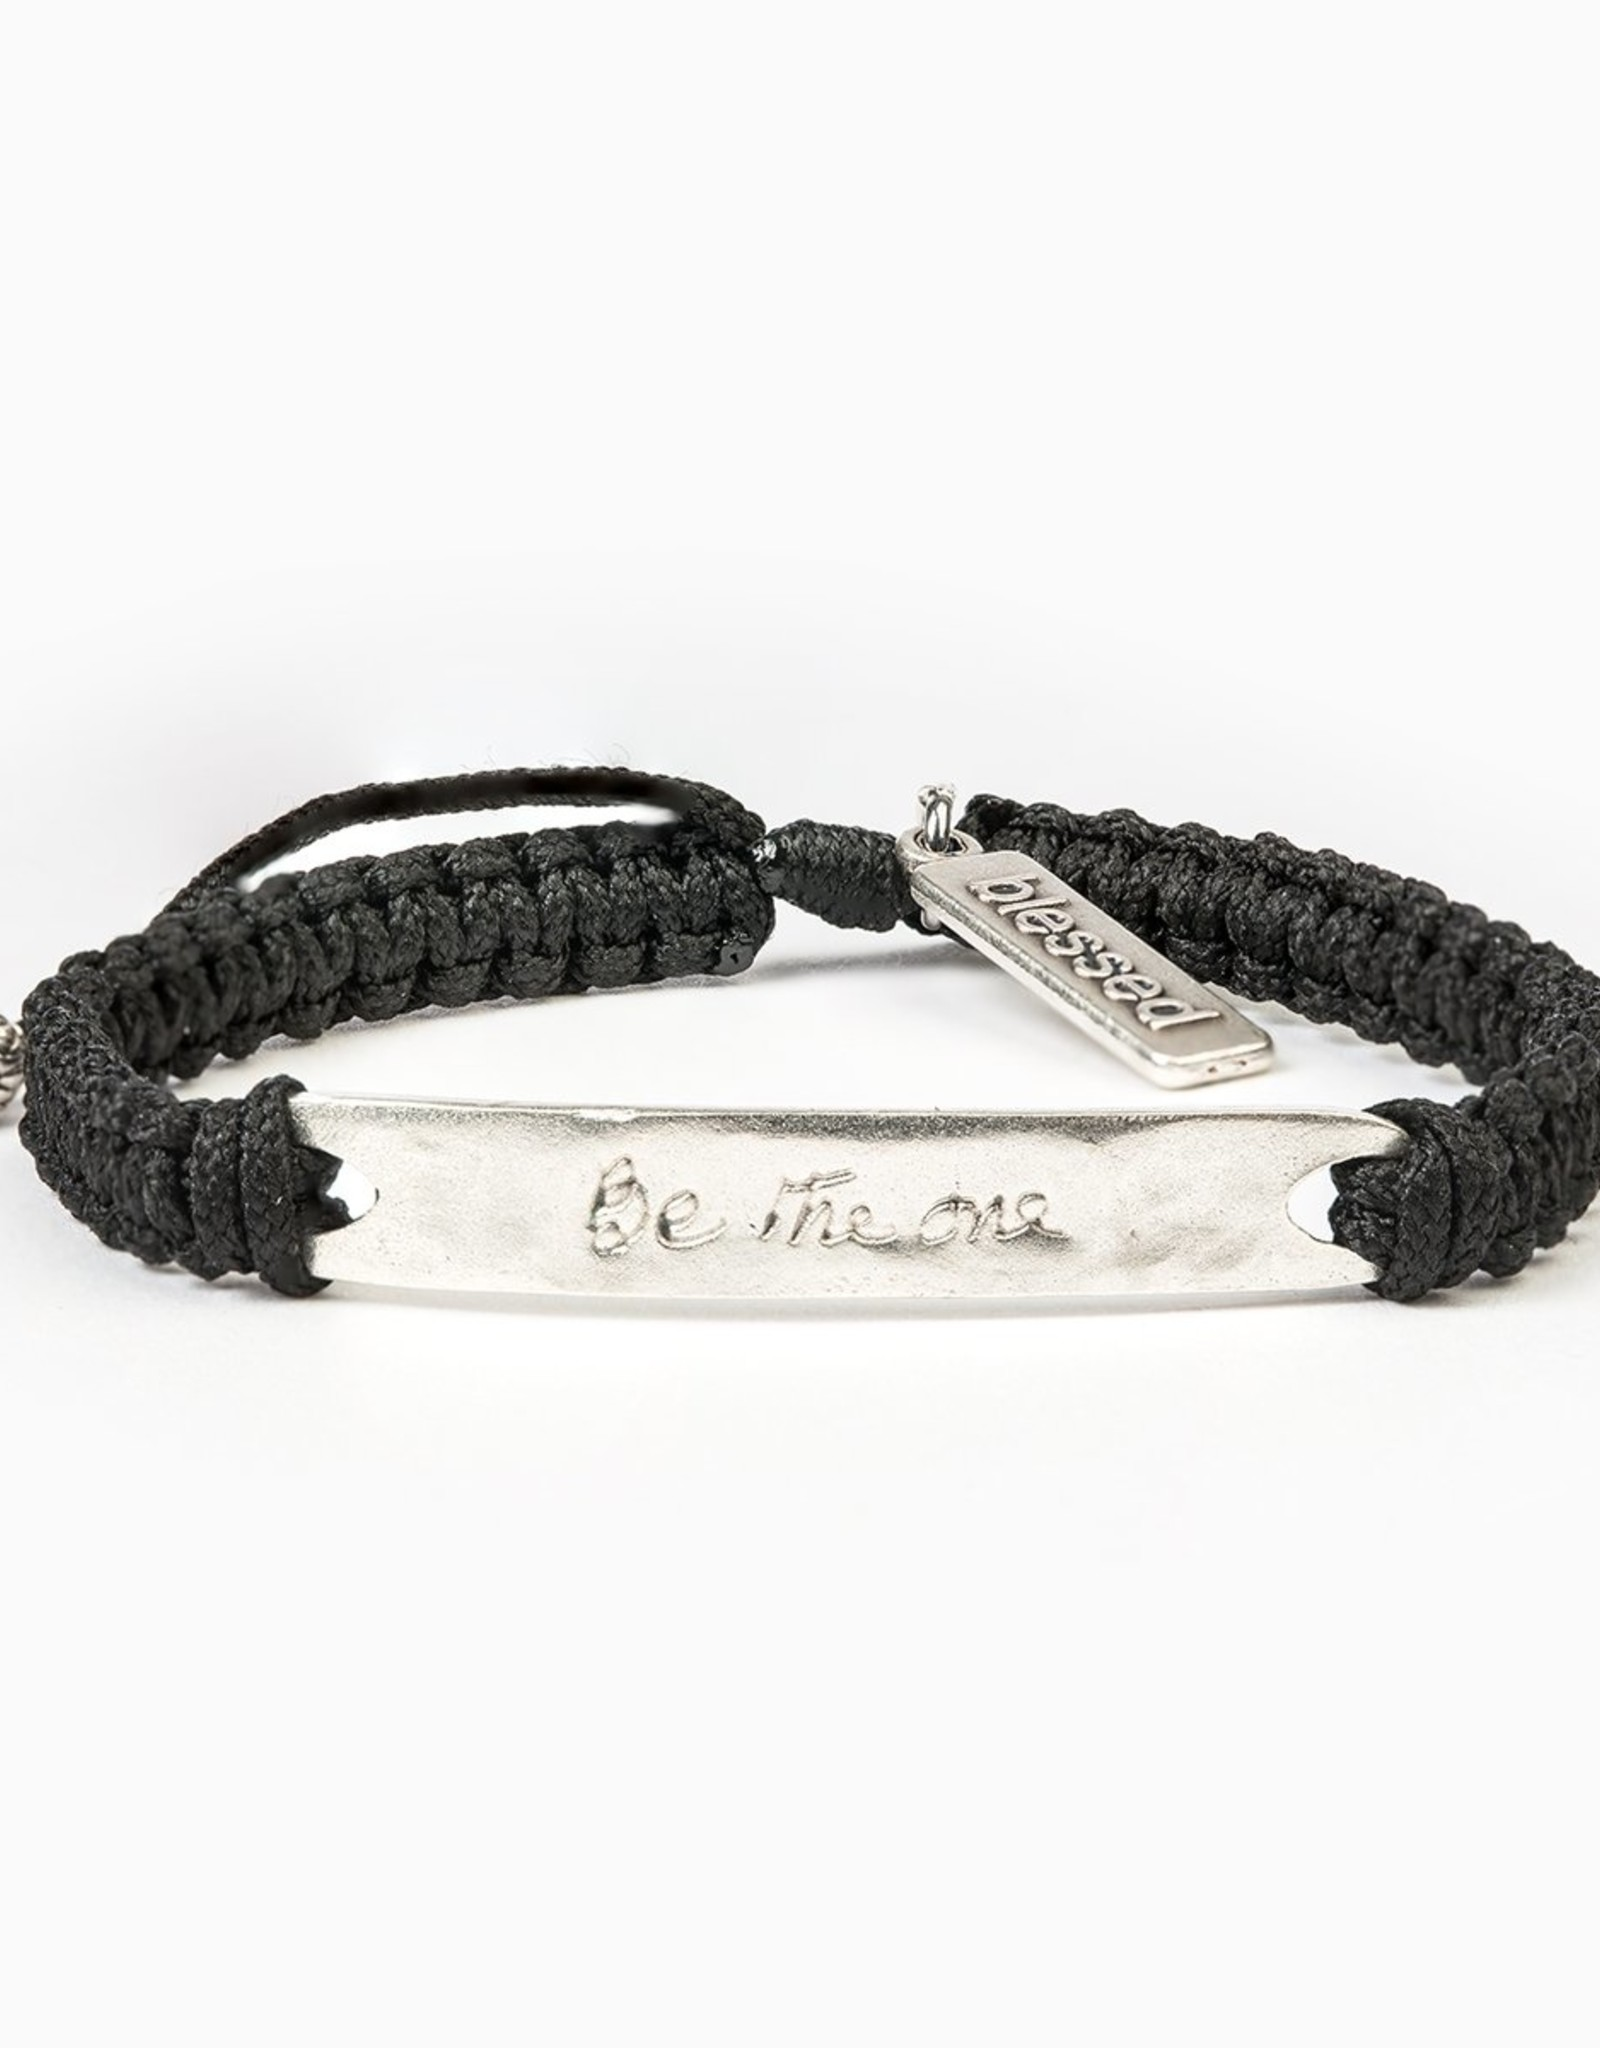 my saint my hero Be The One Bracelet - Black/Silver